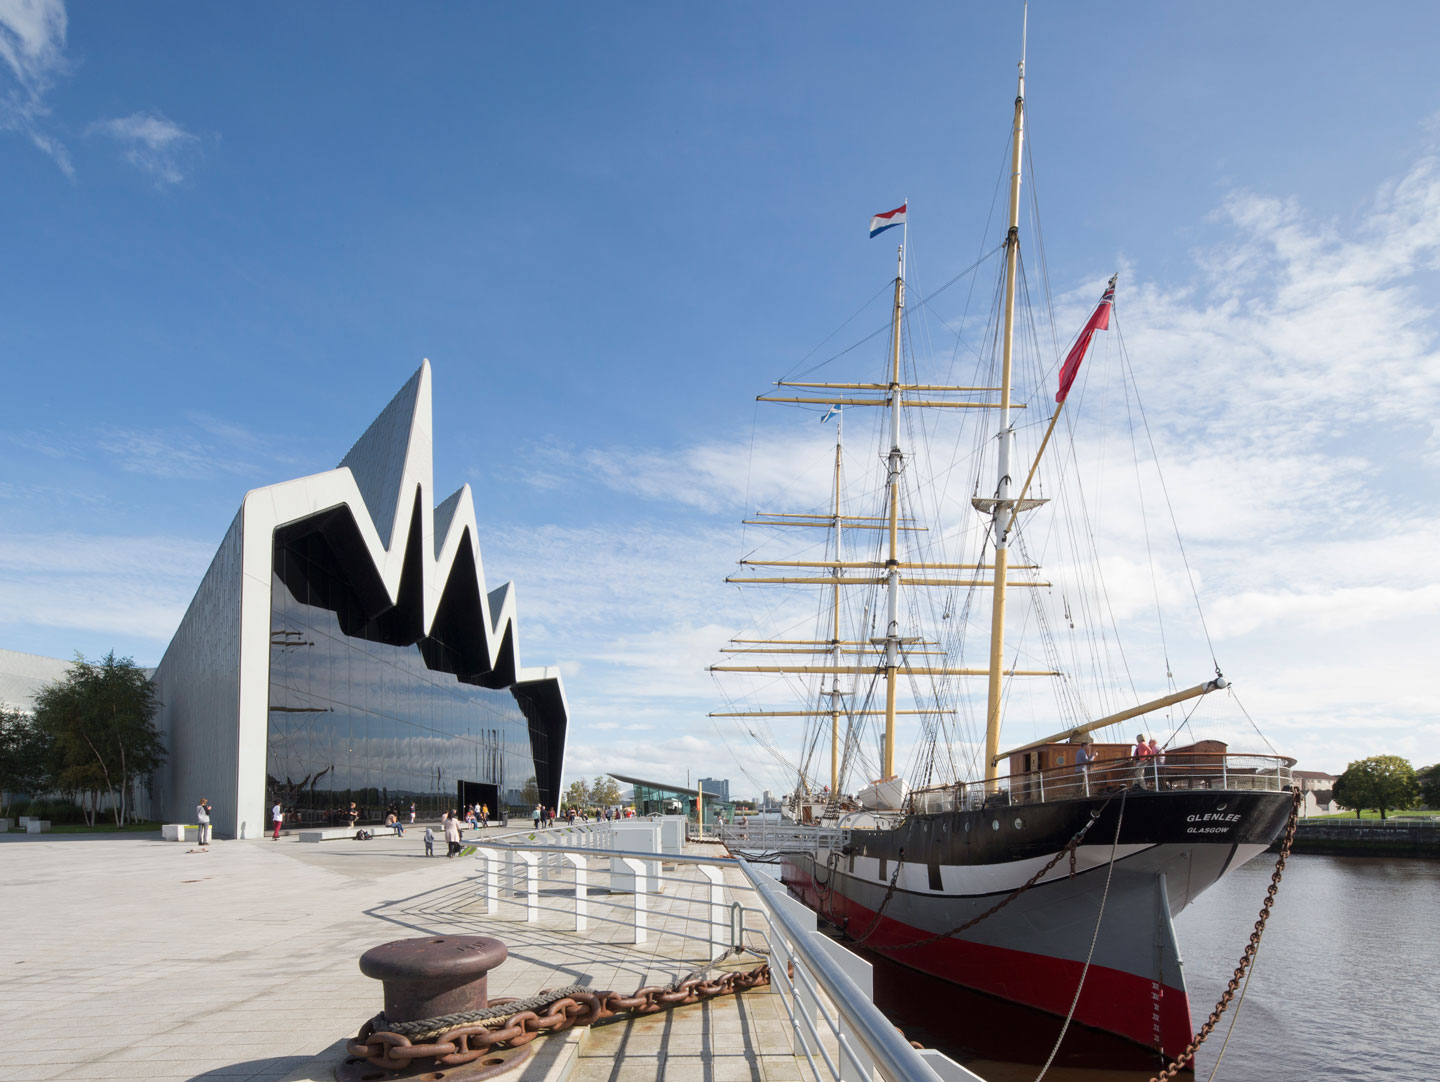 Riverside museum and tall ship in Glasgow